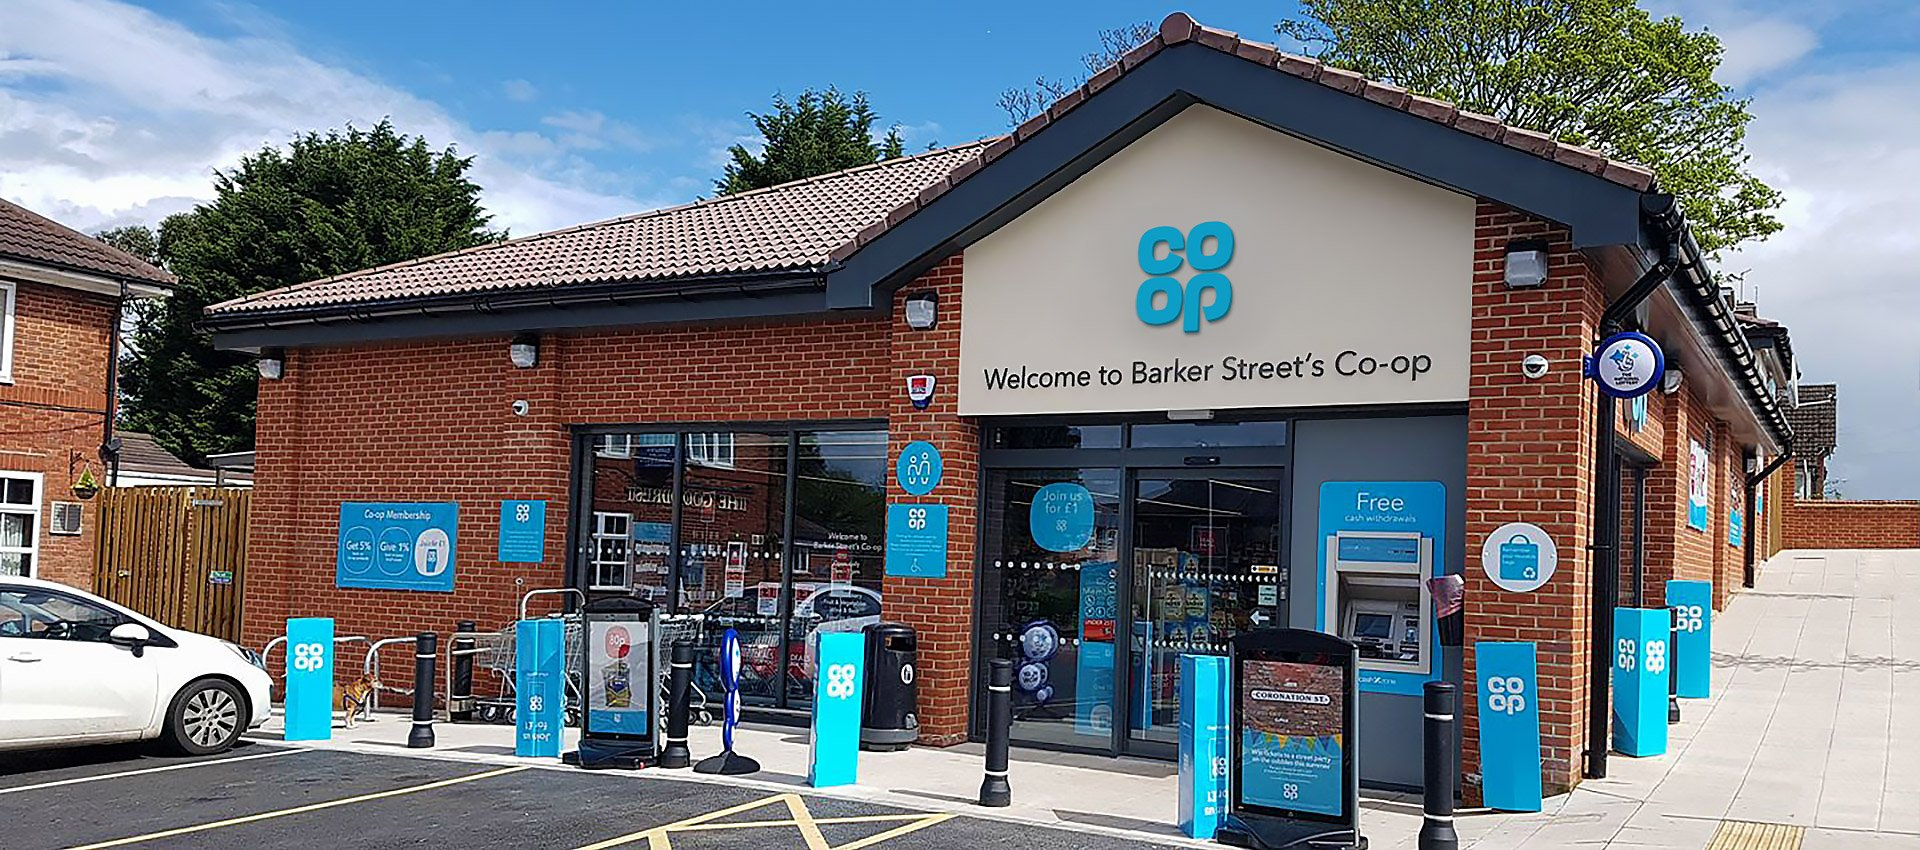 husk architectural facias and soffits chosen for coop barking worcester